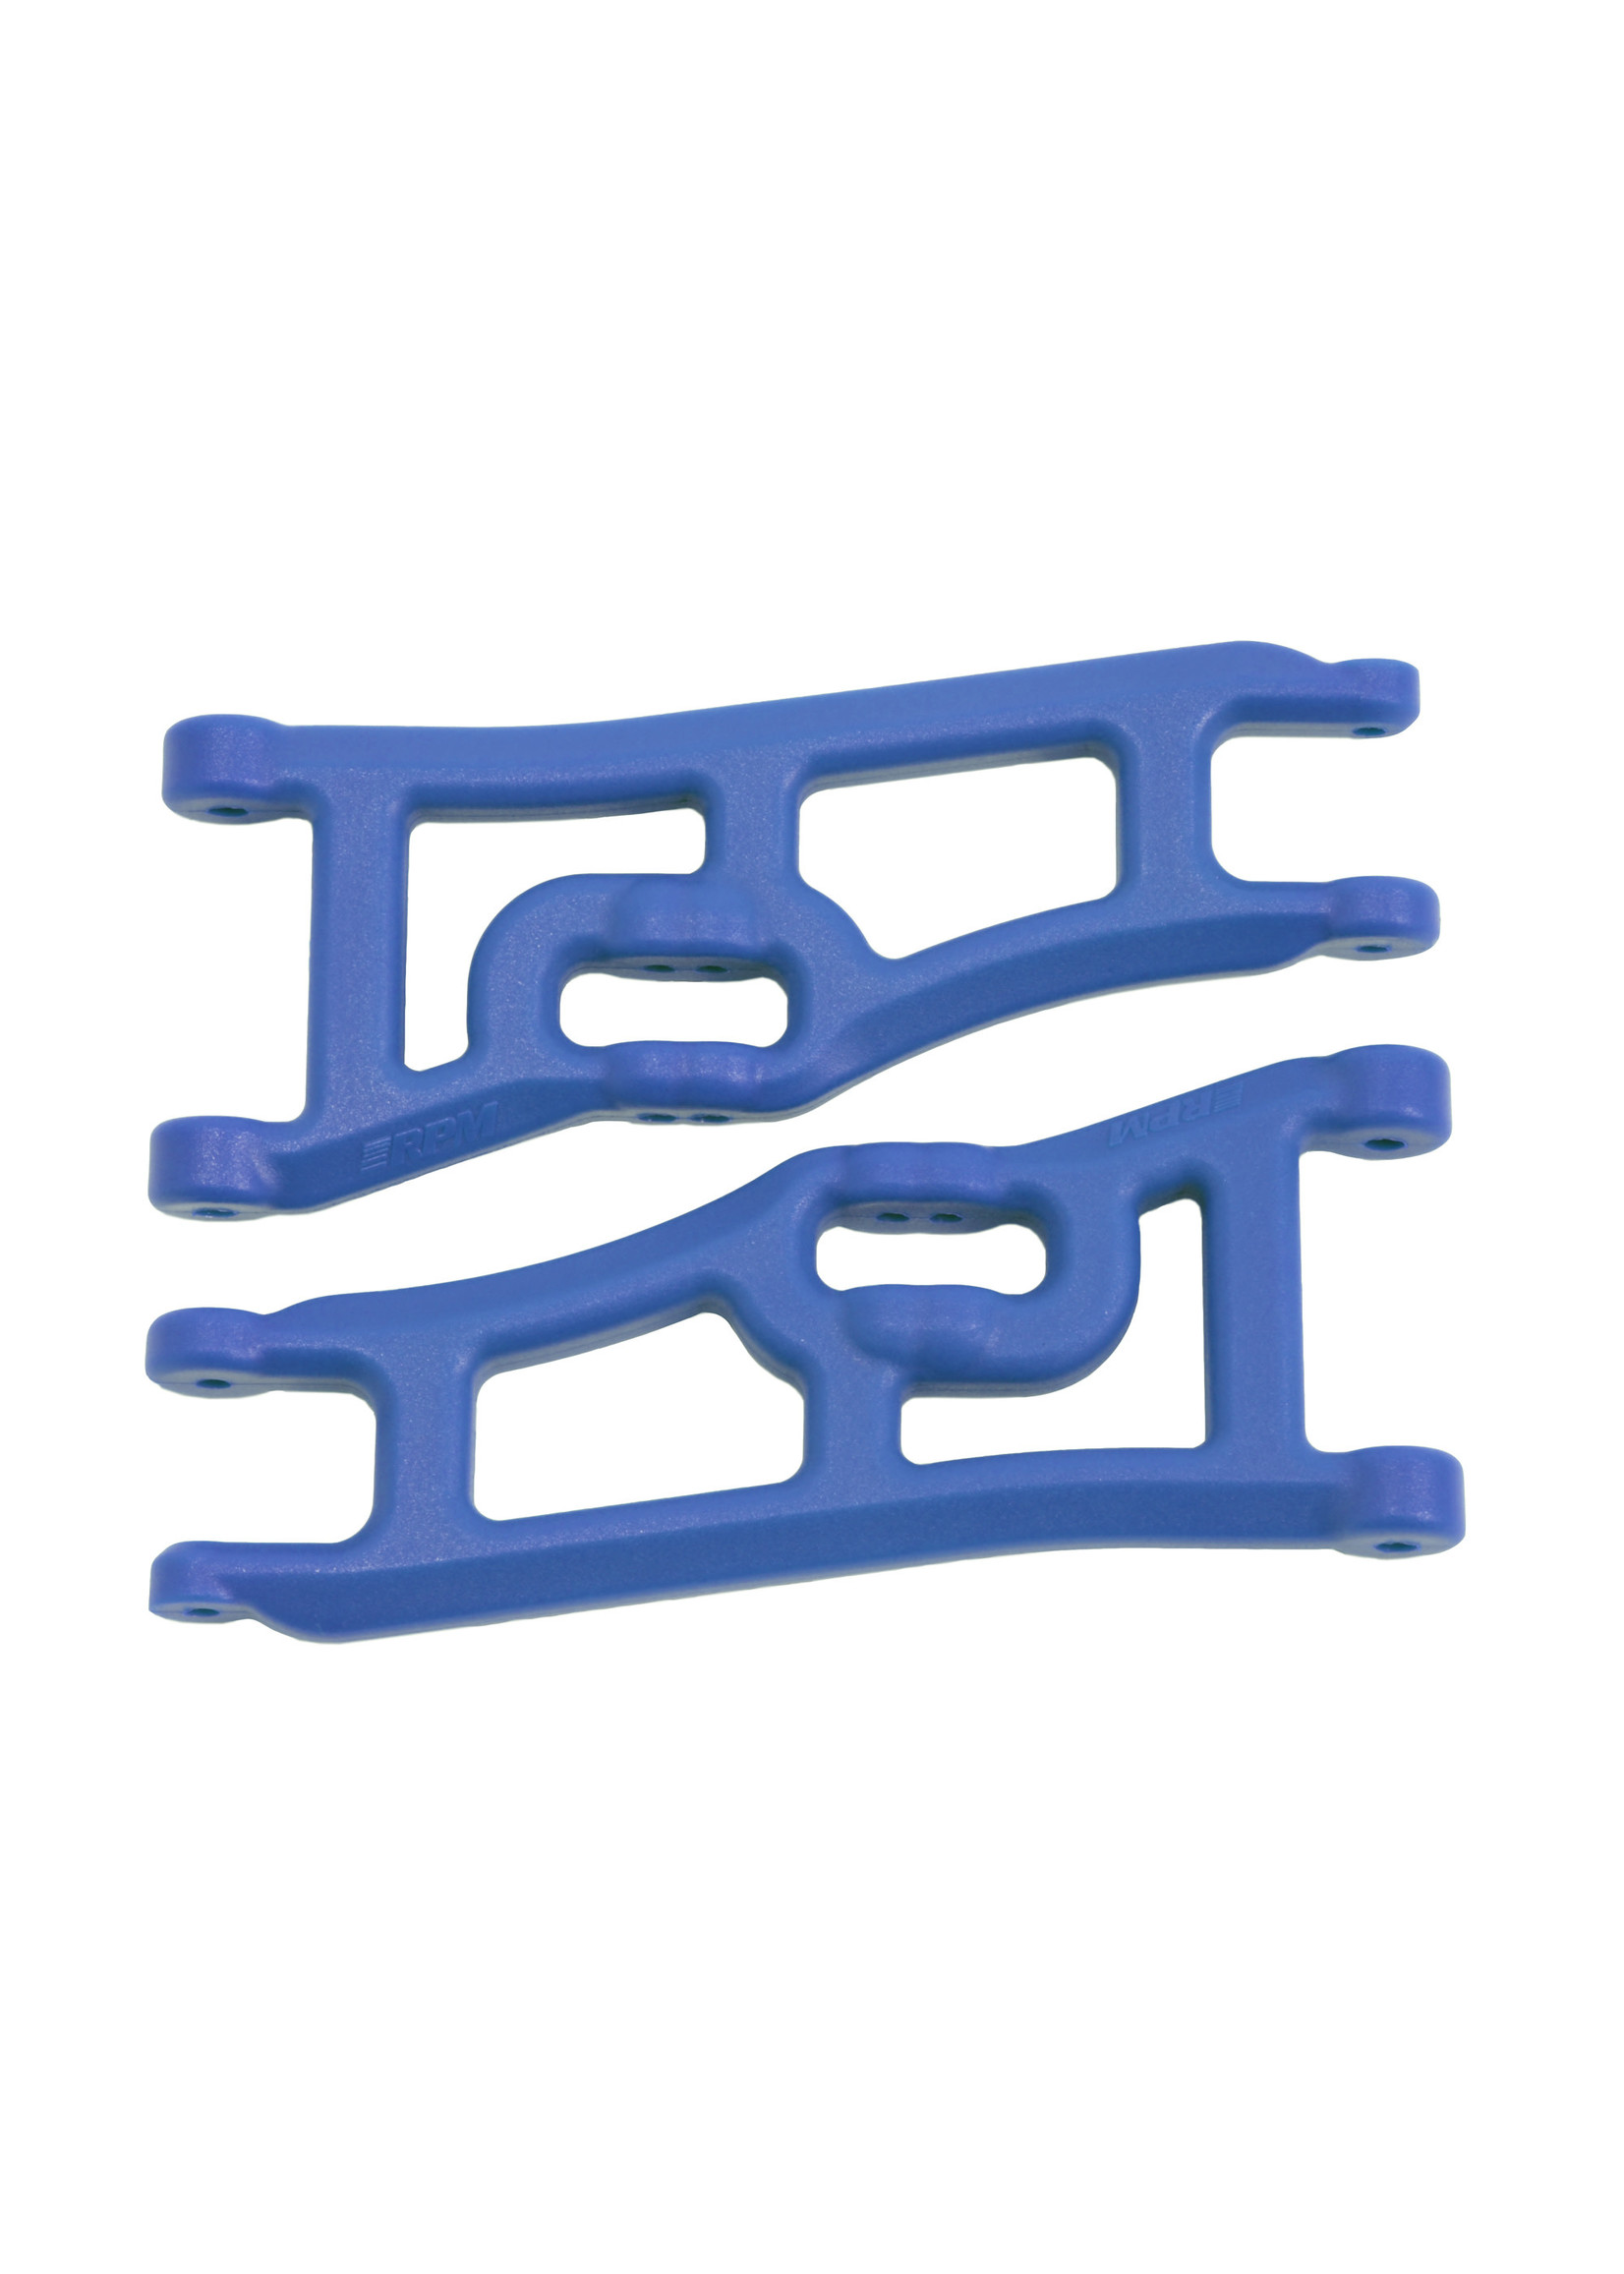 RPM RPM70665 RPM Wide Front A-arms for the Traxxas e-Rustler & Stampede 2wd - Blue